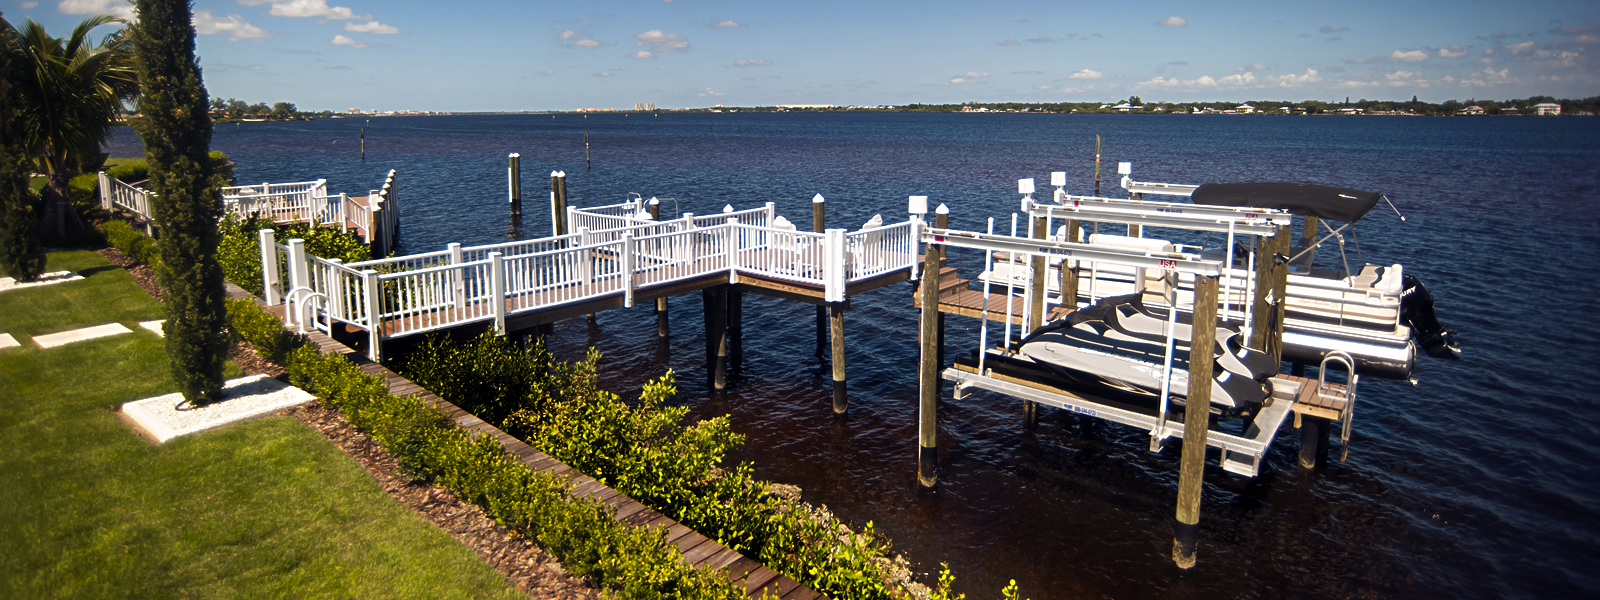 Azek Deck with Azek Railings and Hi-Tide Boat Lifts